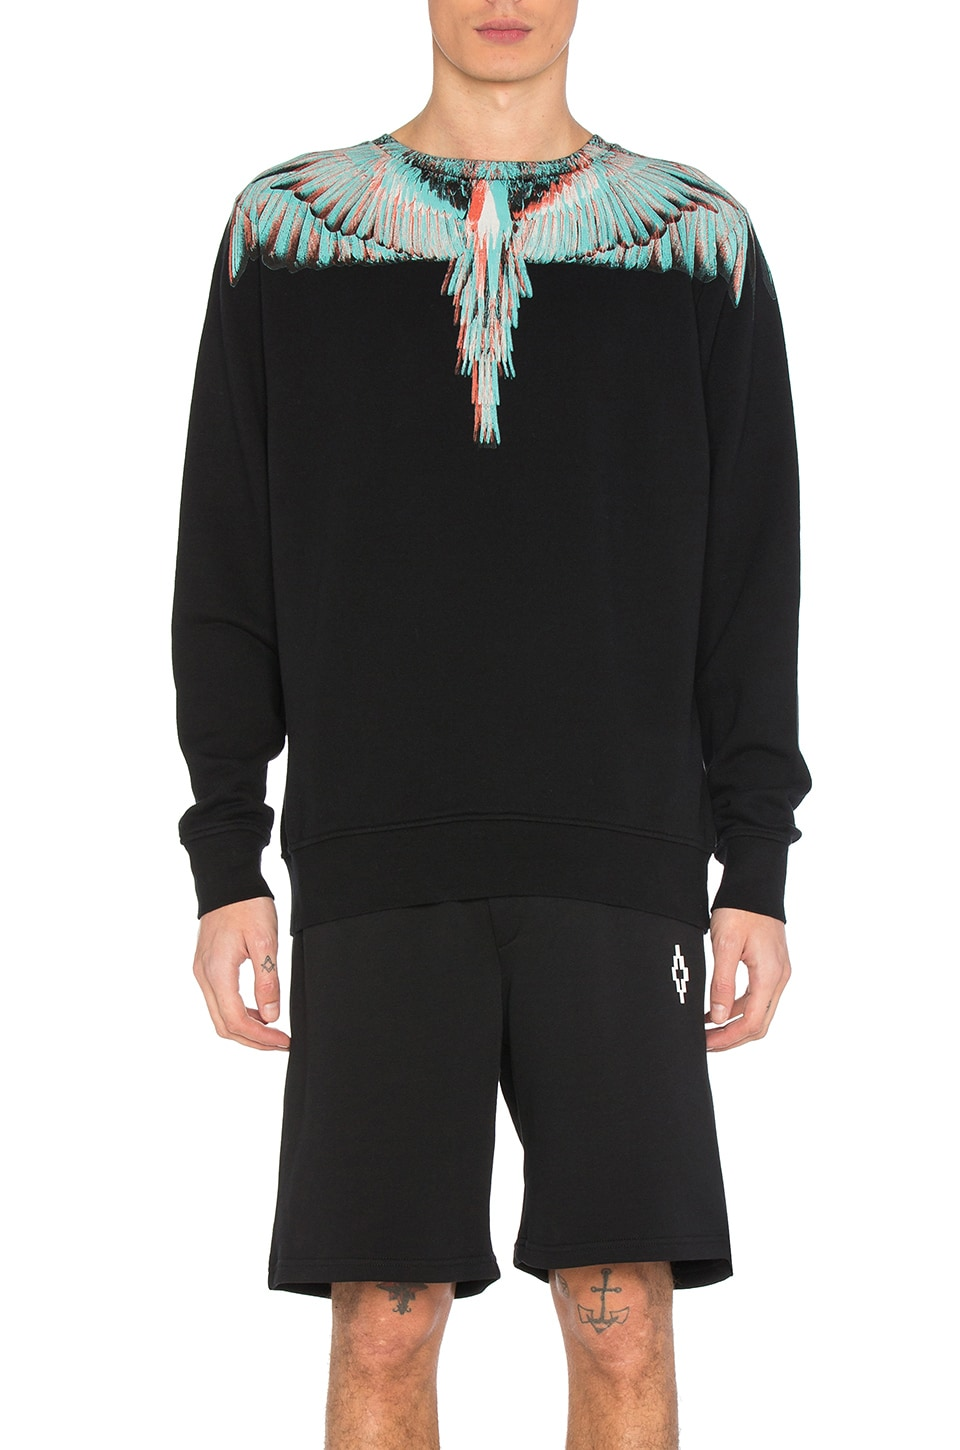 Salvador Crew by Marcelo Burlon